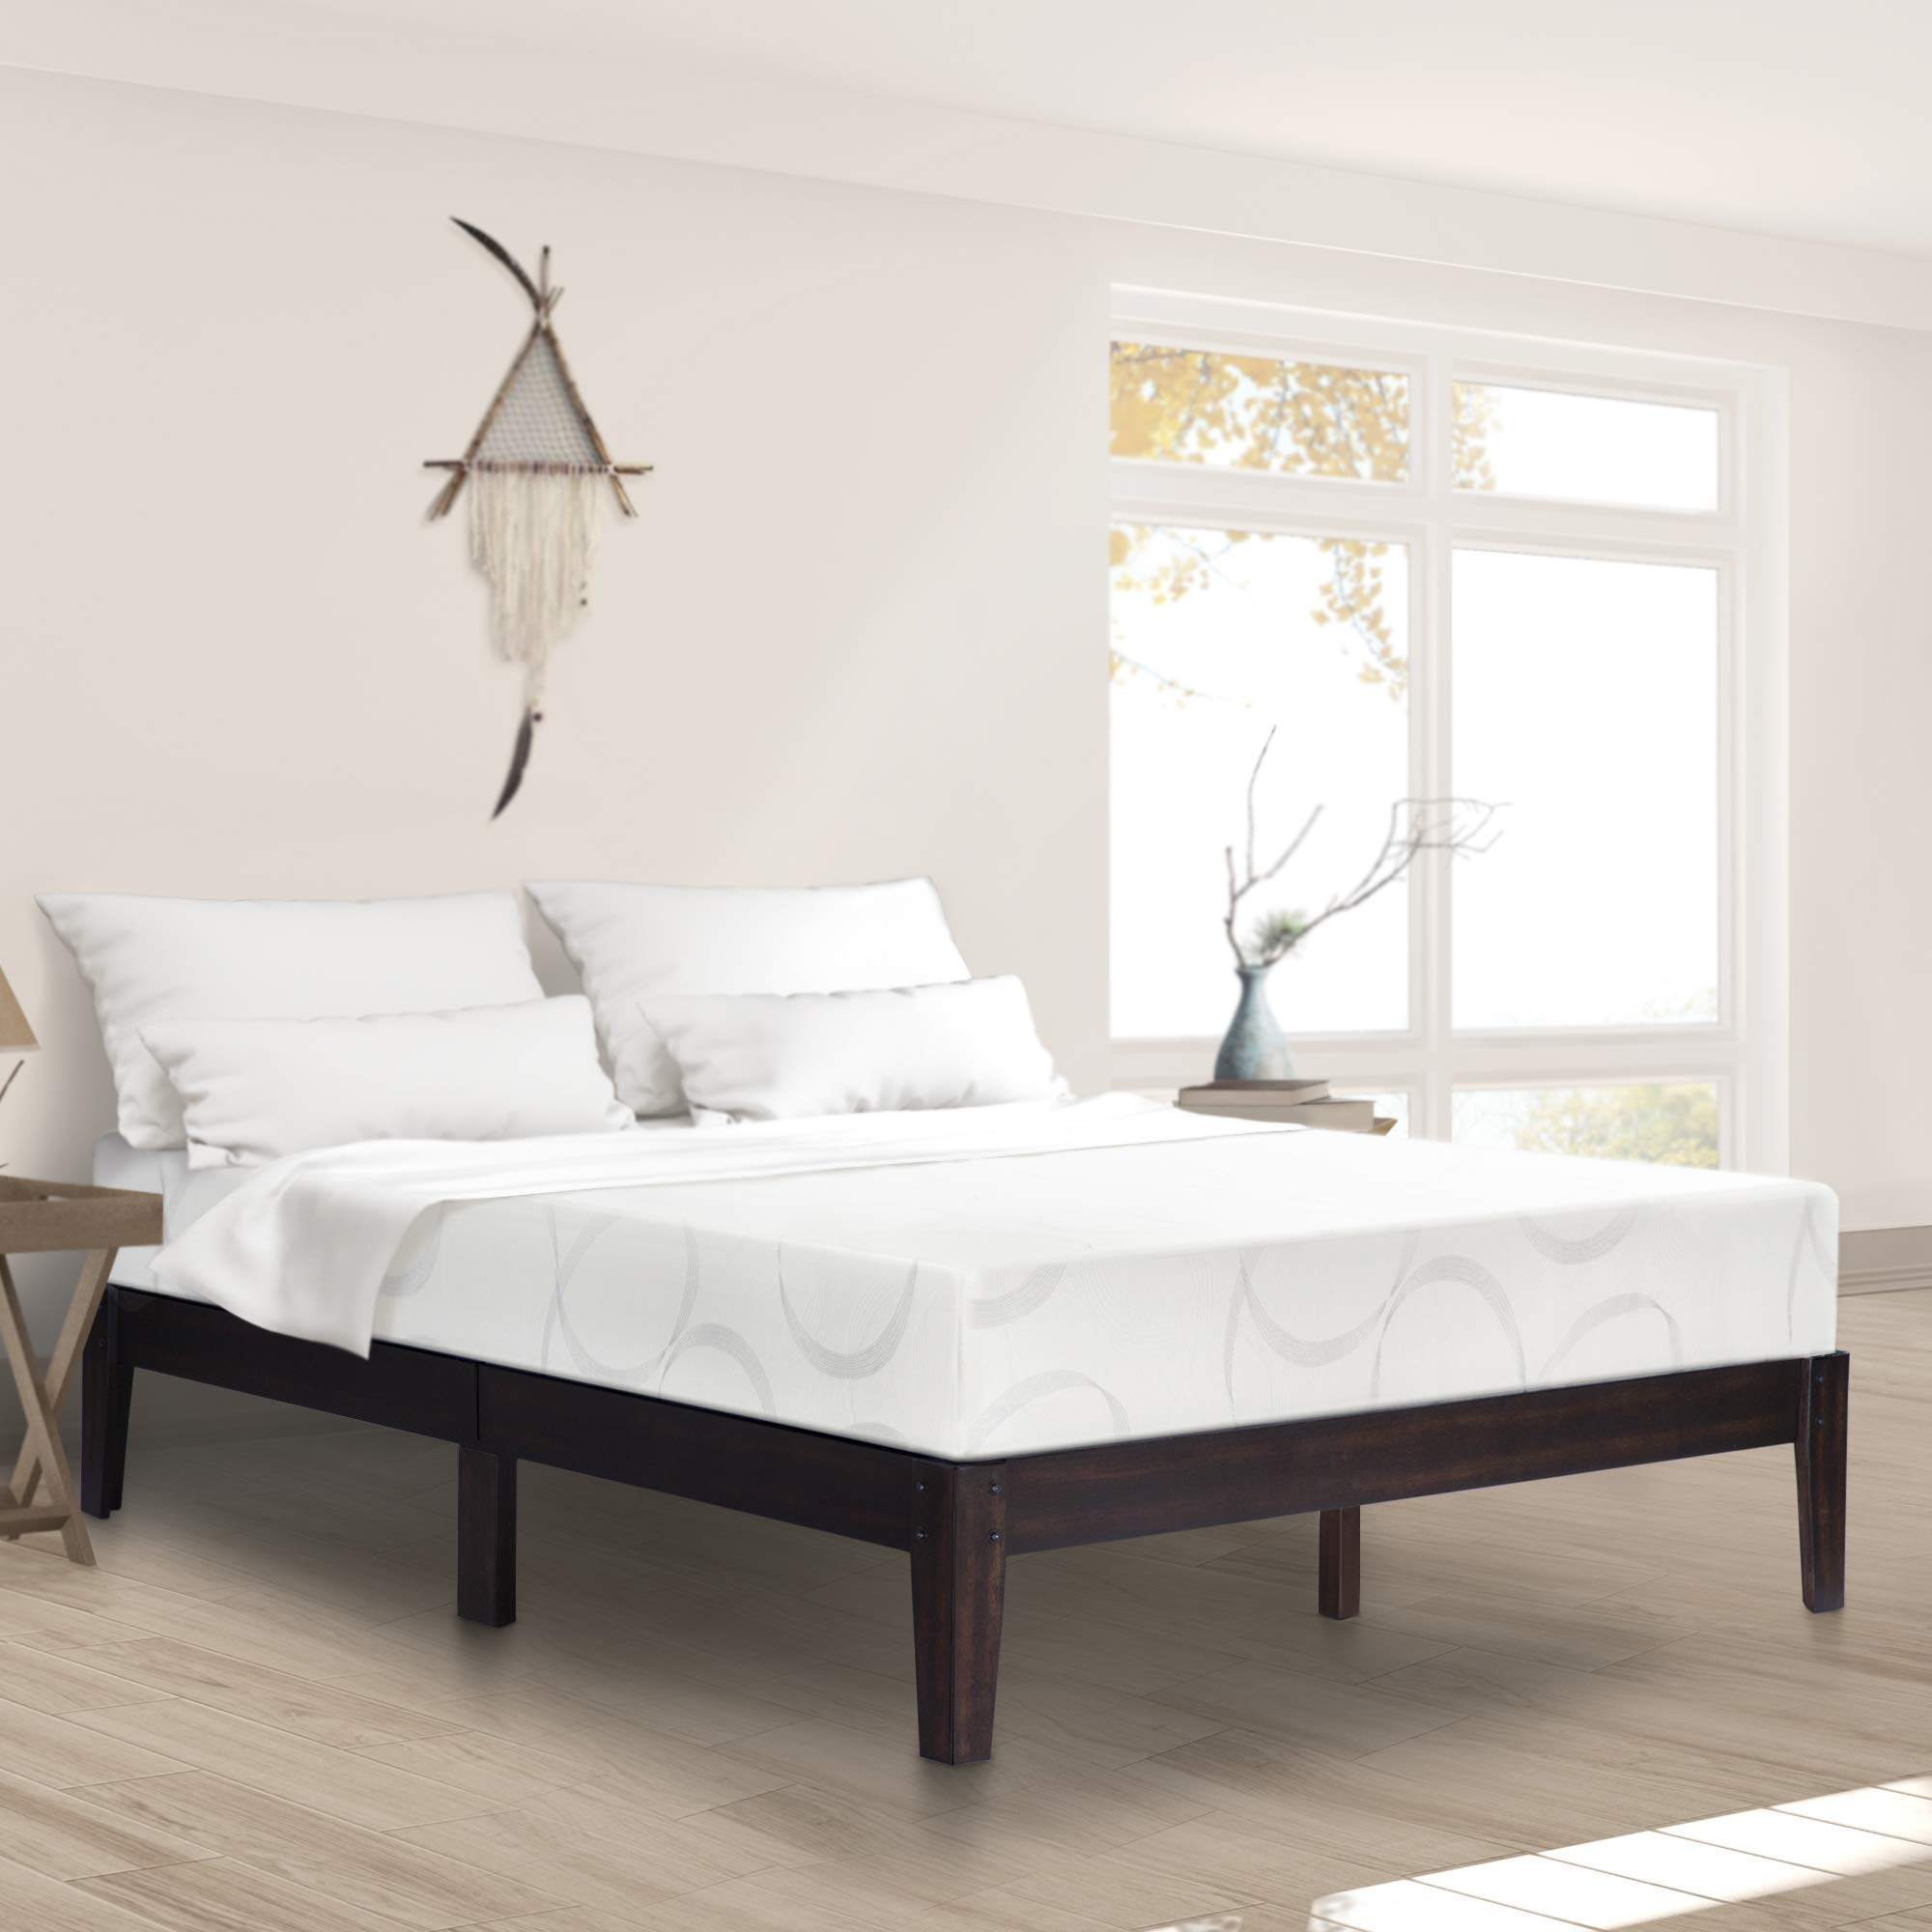 Ecos Living 14 Inch Solid Wood Platform Bed with Natural Finish ...